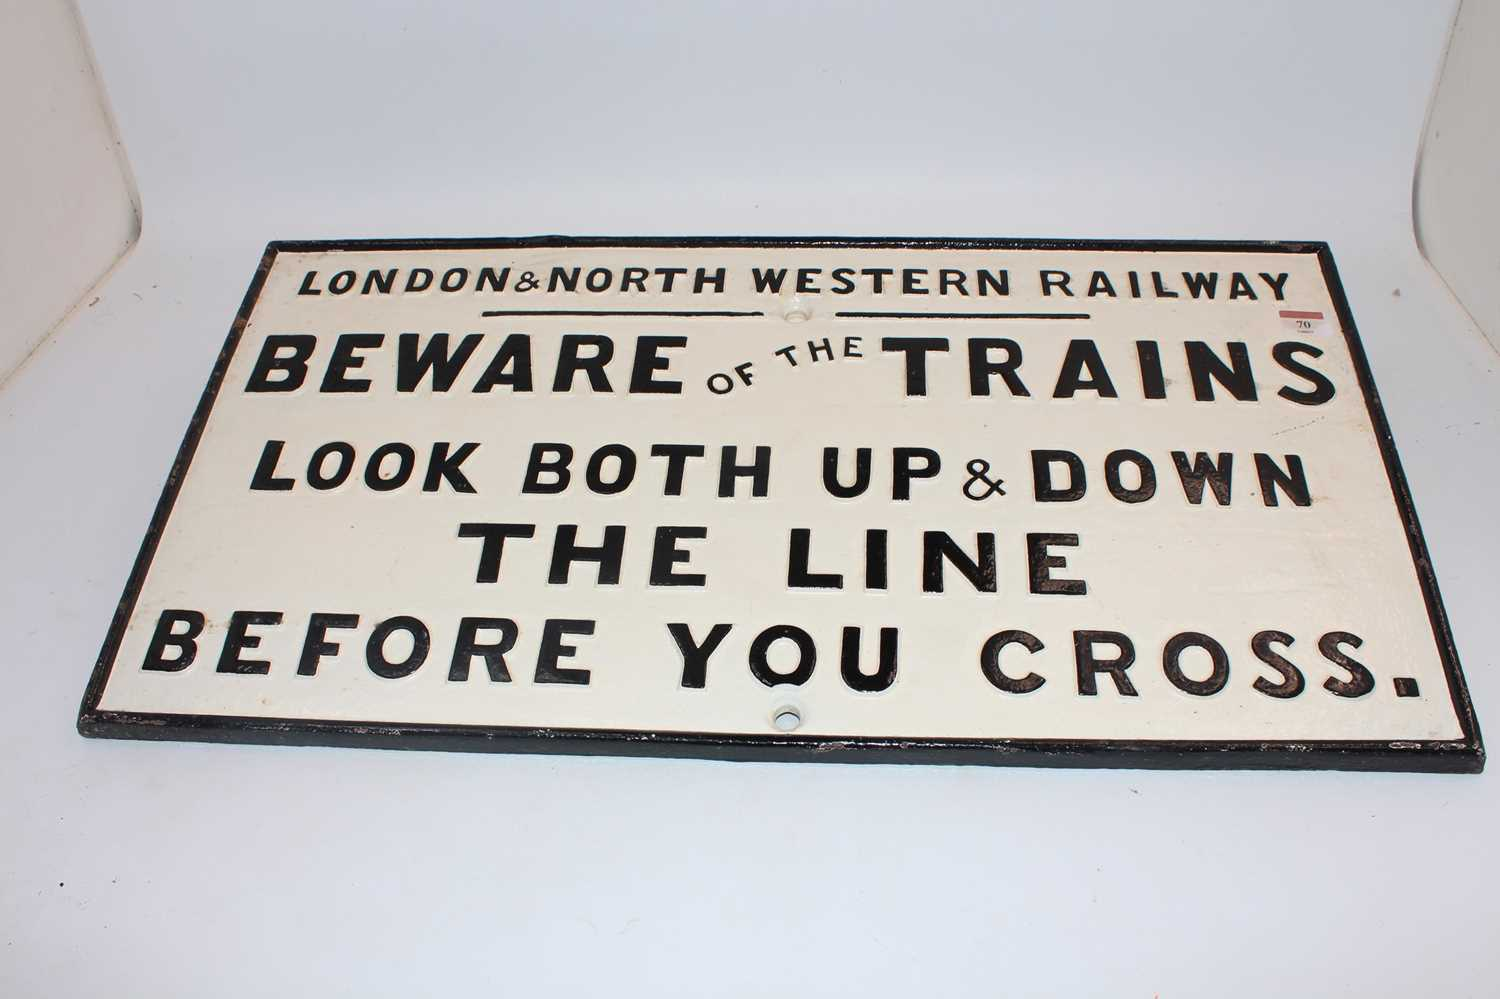 A London and North Western Railway 'Beware of the Trains' cast iron notice, restored, finished in